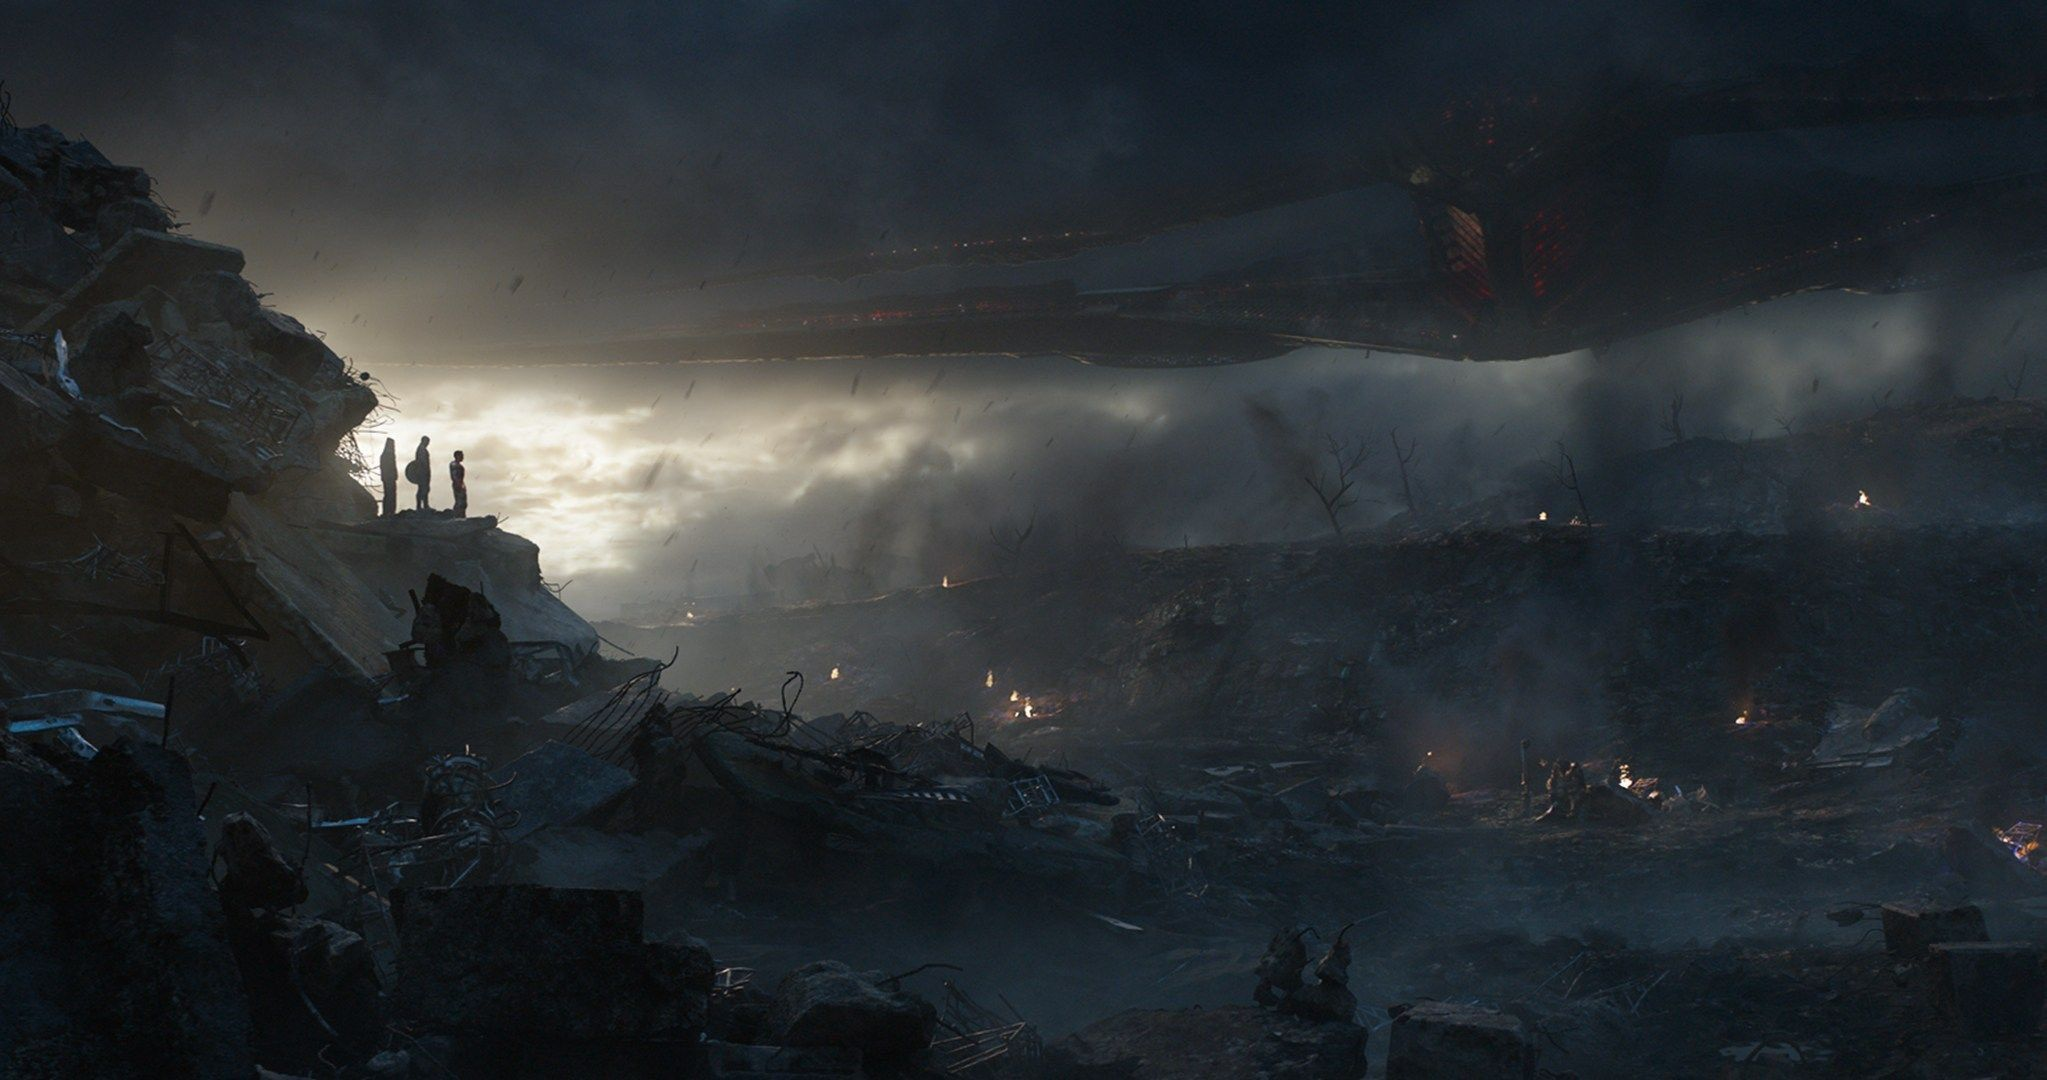 Avengers Endgame Hi Res Spoiler Stills Highlight The Biggest Moments And Provide Perfect Wallpapers Marvel Wallpaper Marvel Cinematic Universe Marvel